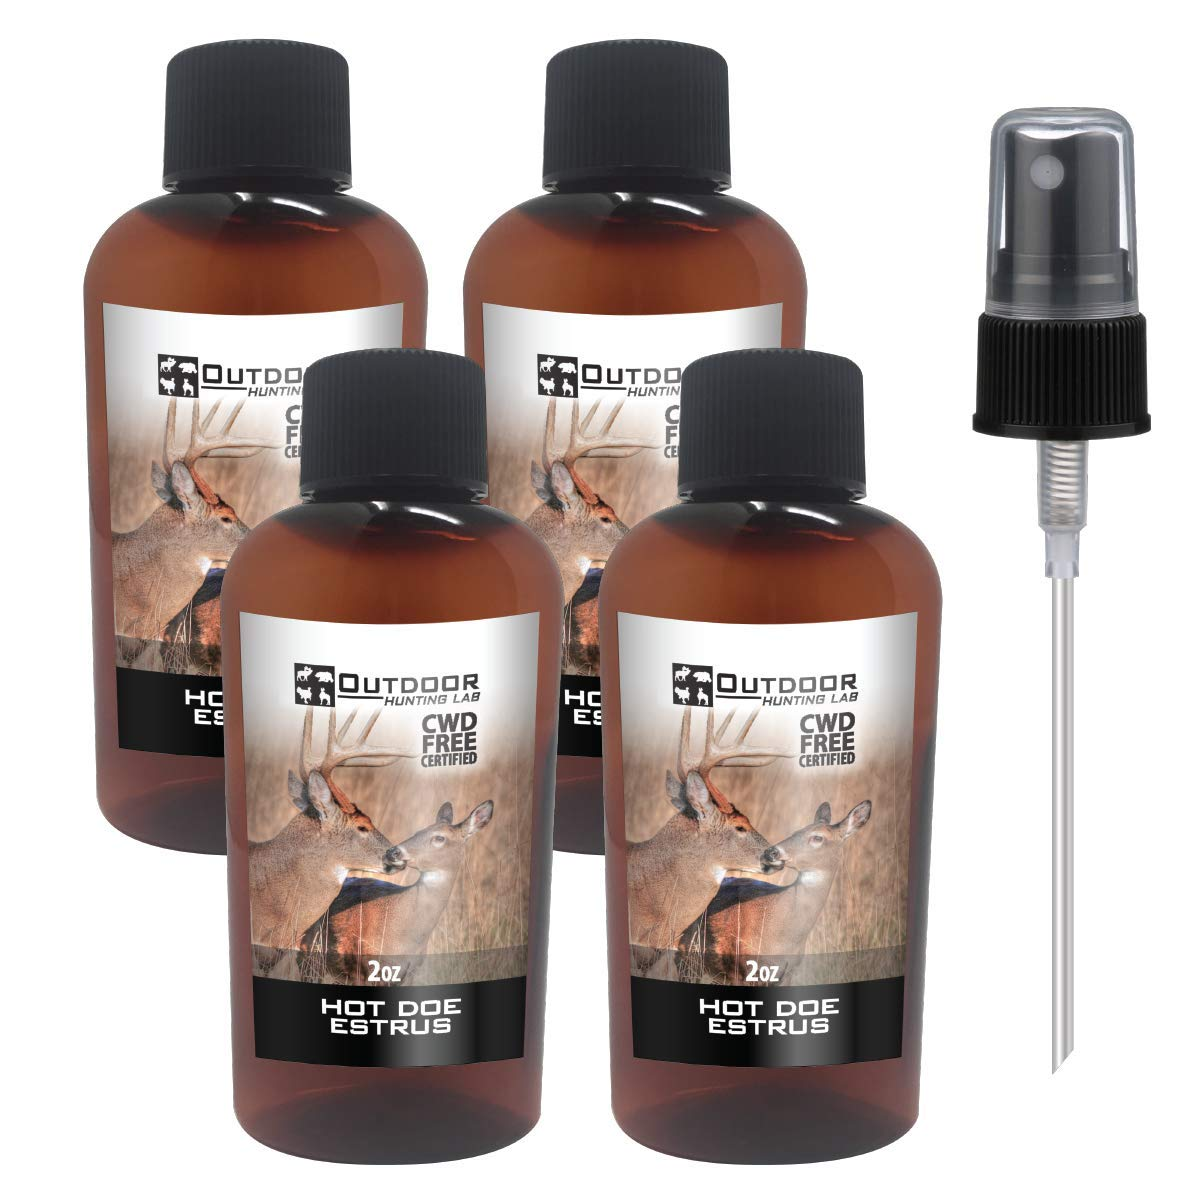 Outdoor Hunting Labs Deer Attractant Scent - HOT DOE Estrus Urine Lure - Whitetail Bucks, Doe in Rut, Pure Whitetail Scents (4 Bottle)